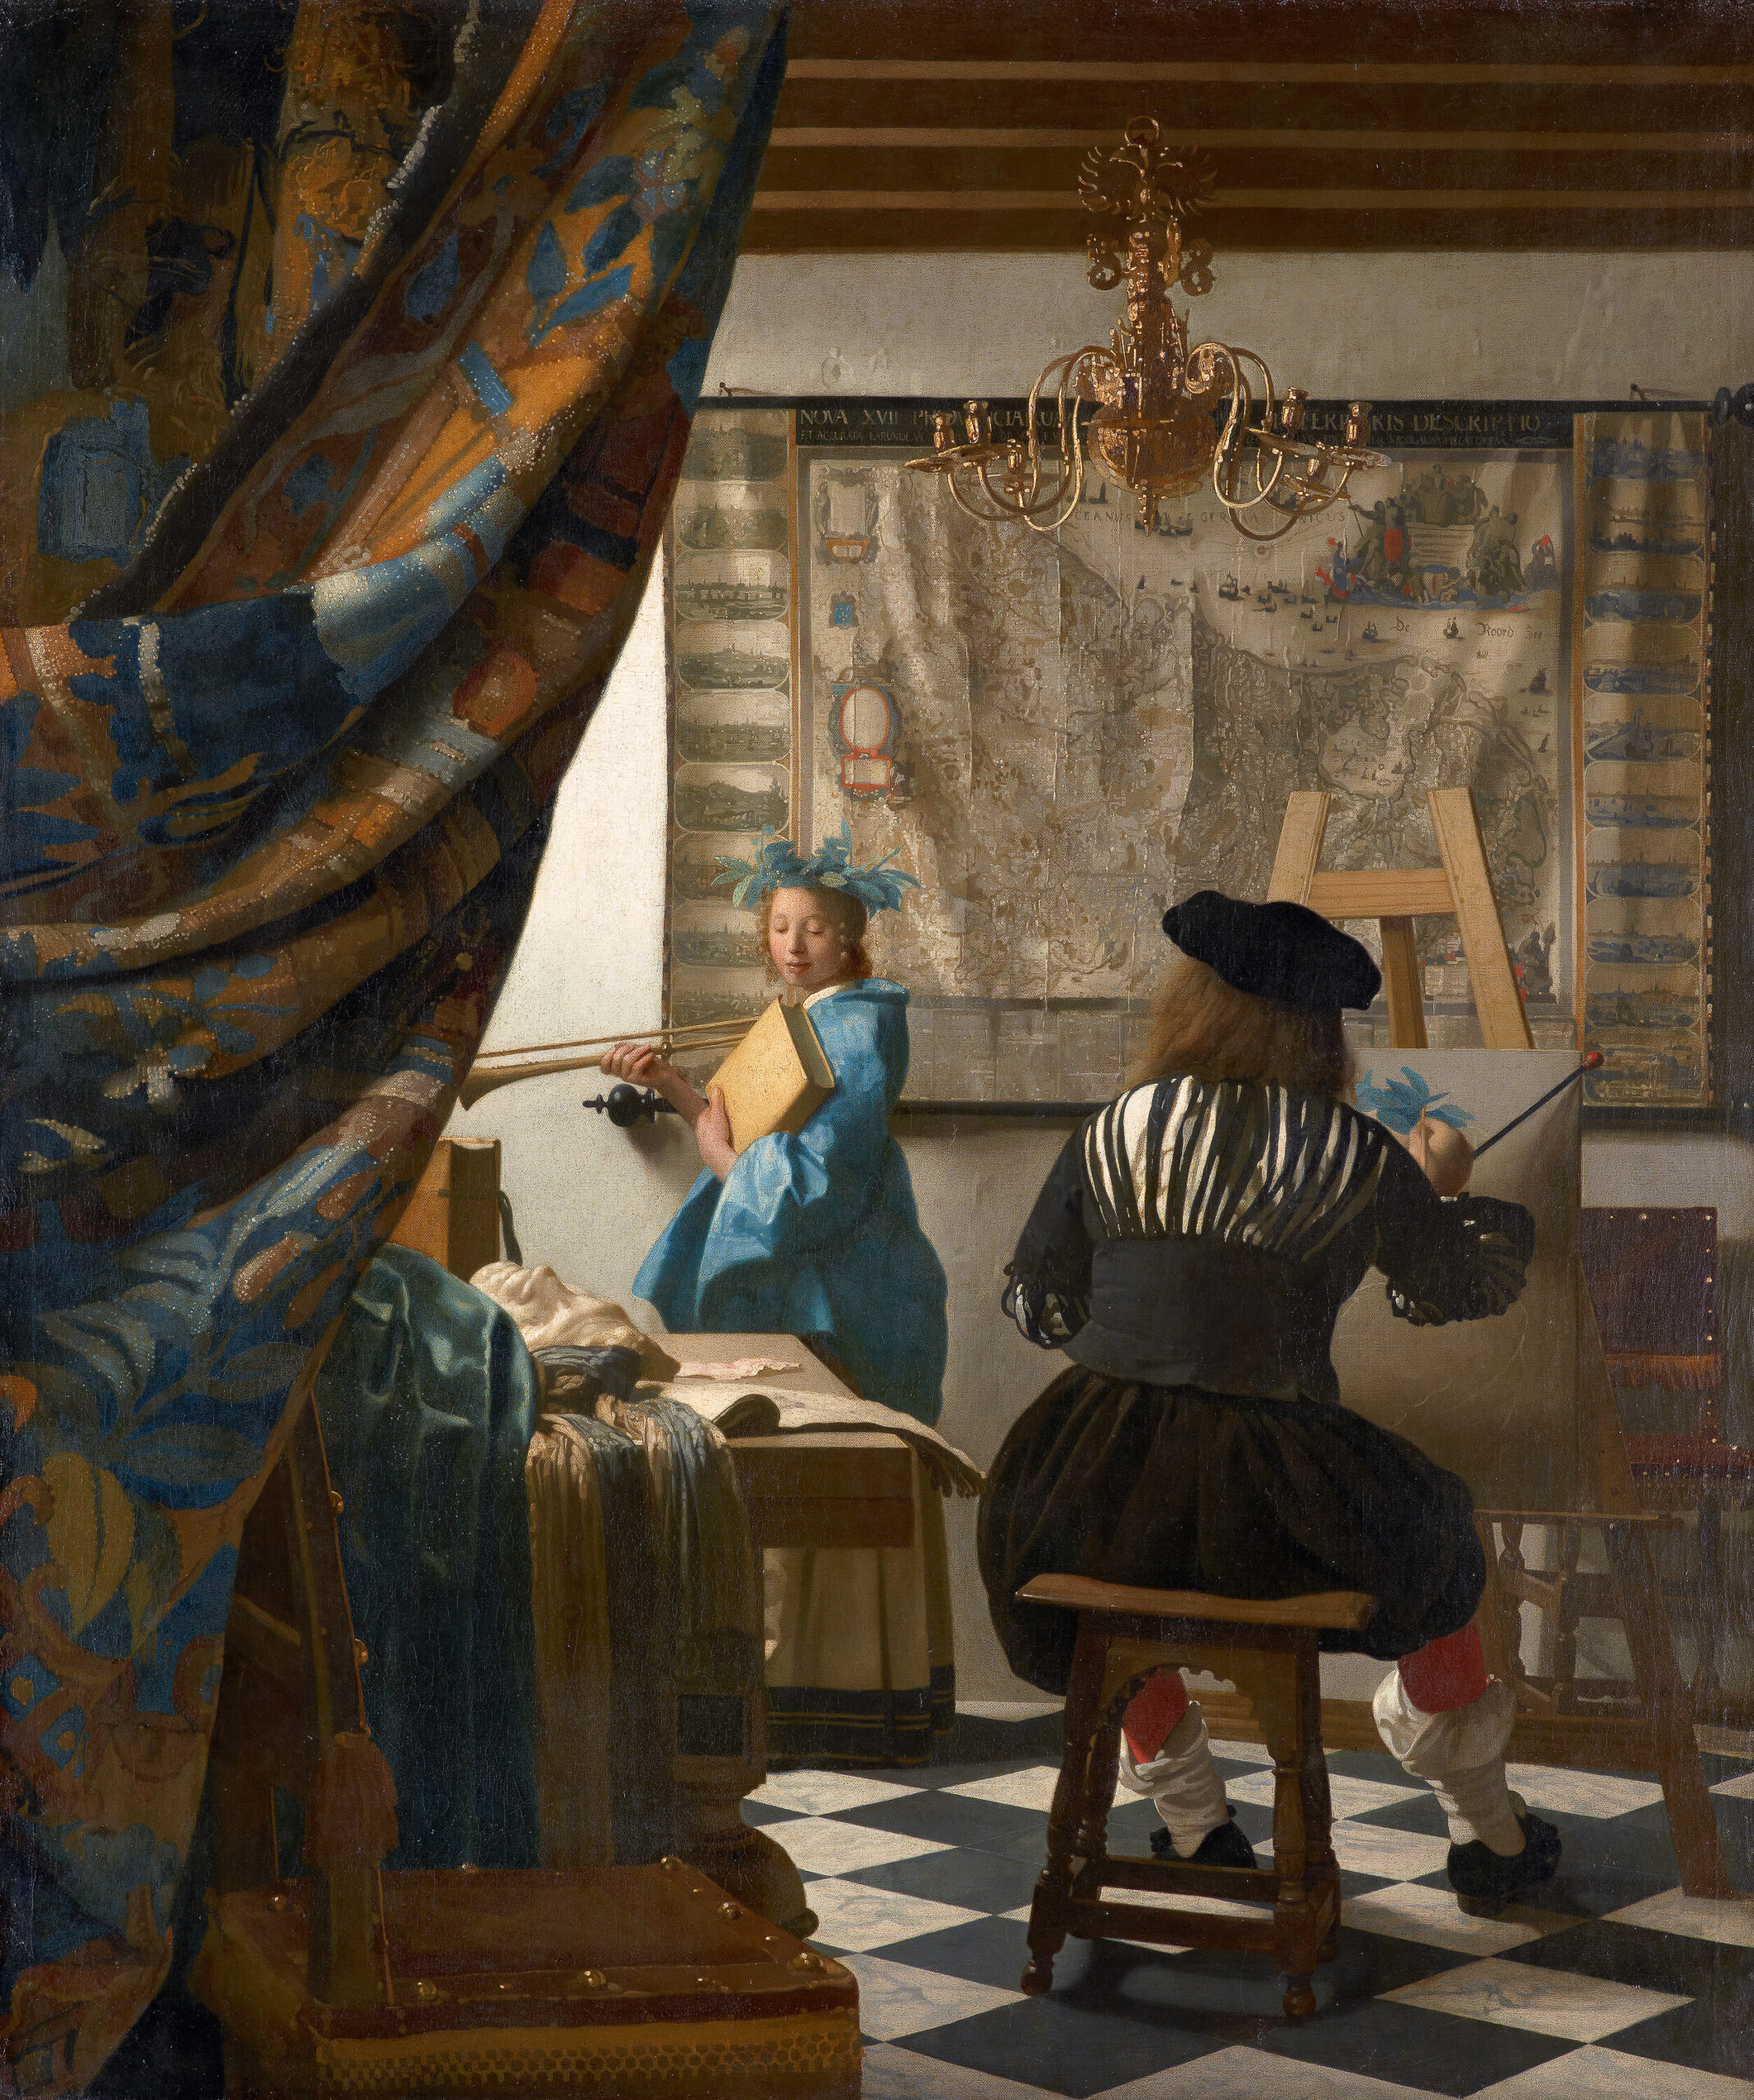 <i>Kunsthistorisches Museum Vienna</i><br/>Art historians aren't sure where Vermeer learned to paint